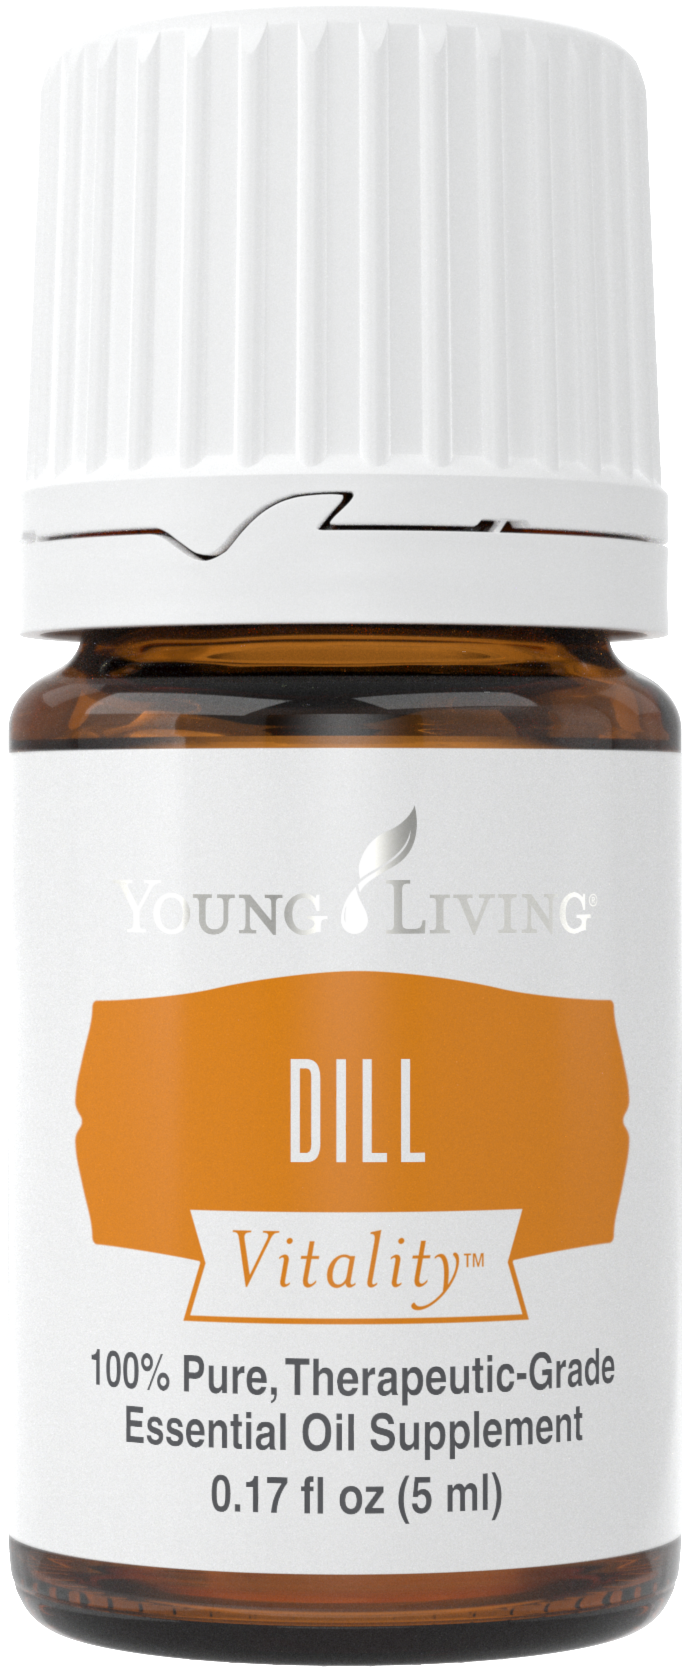 dill_5ml_suplement_silo_2016_24402451095_o